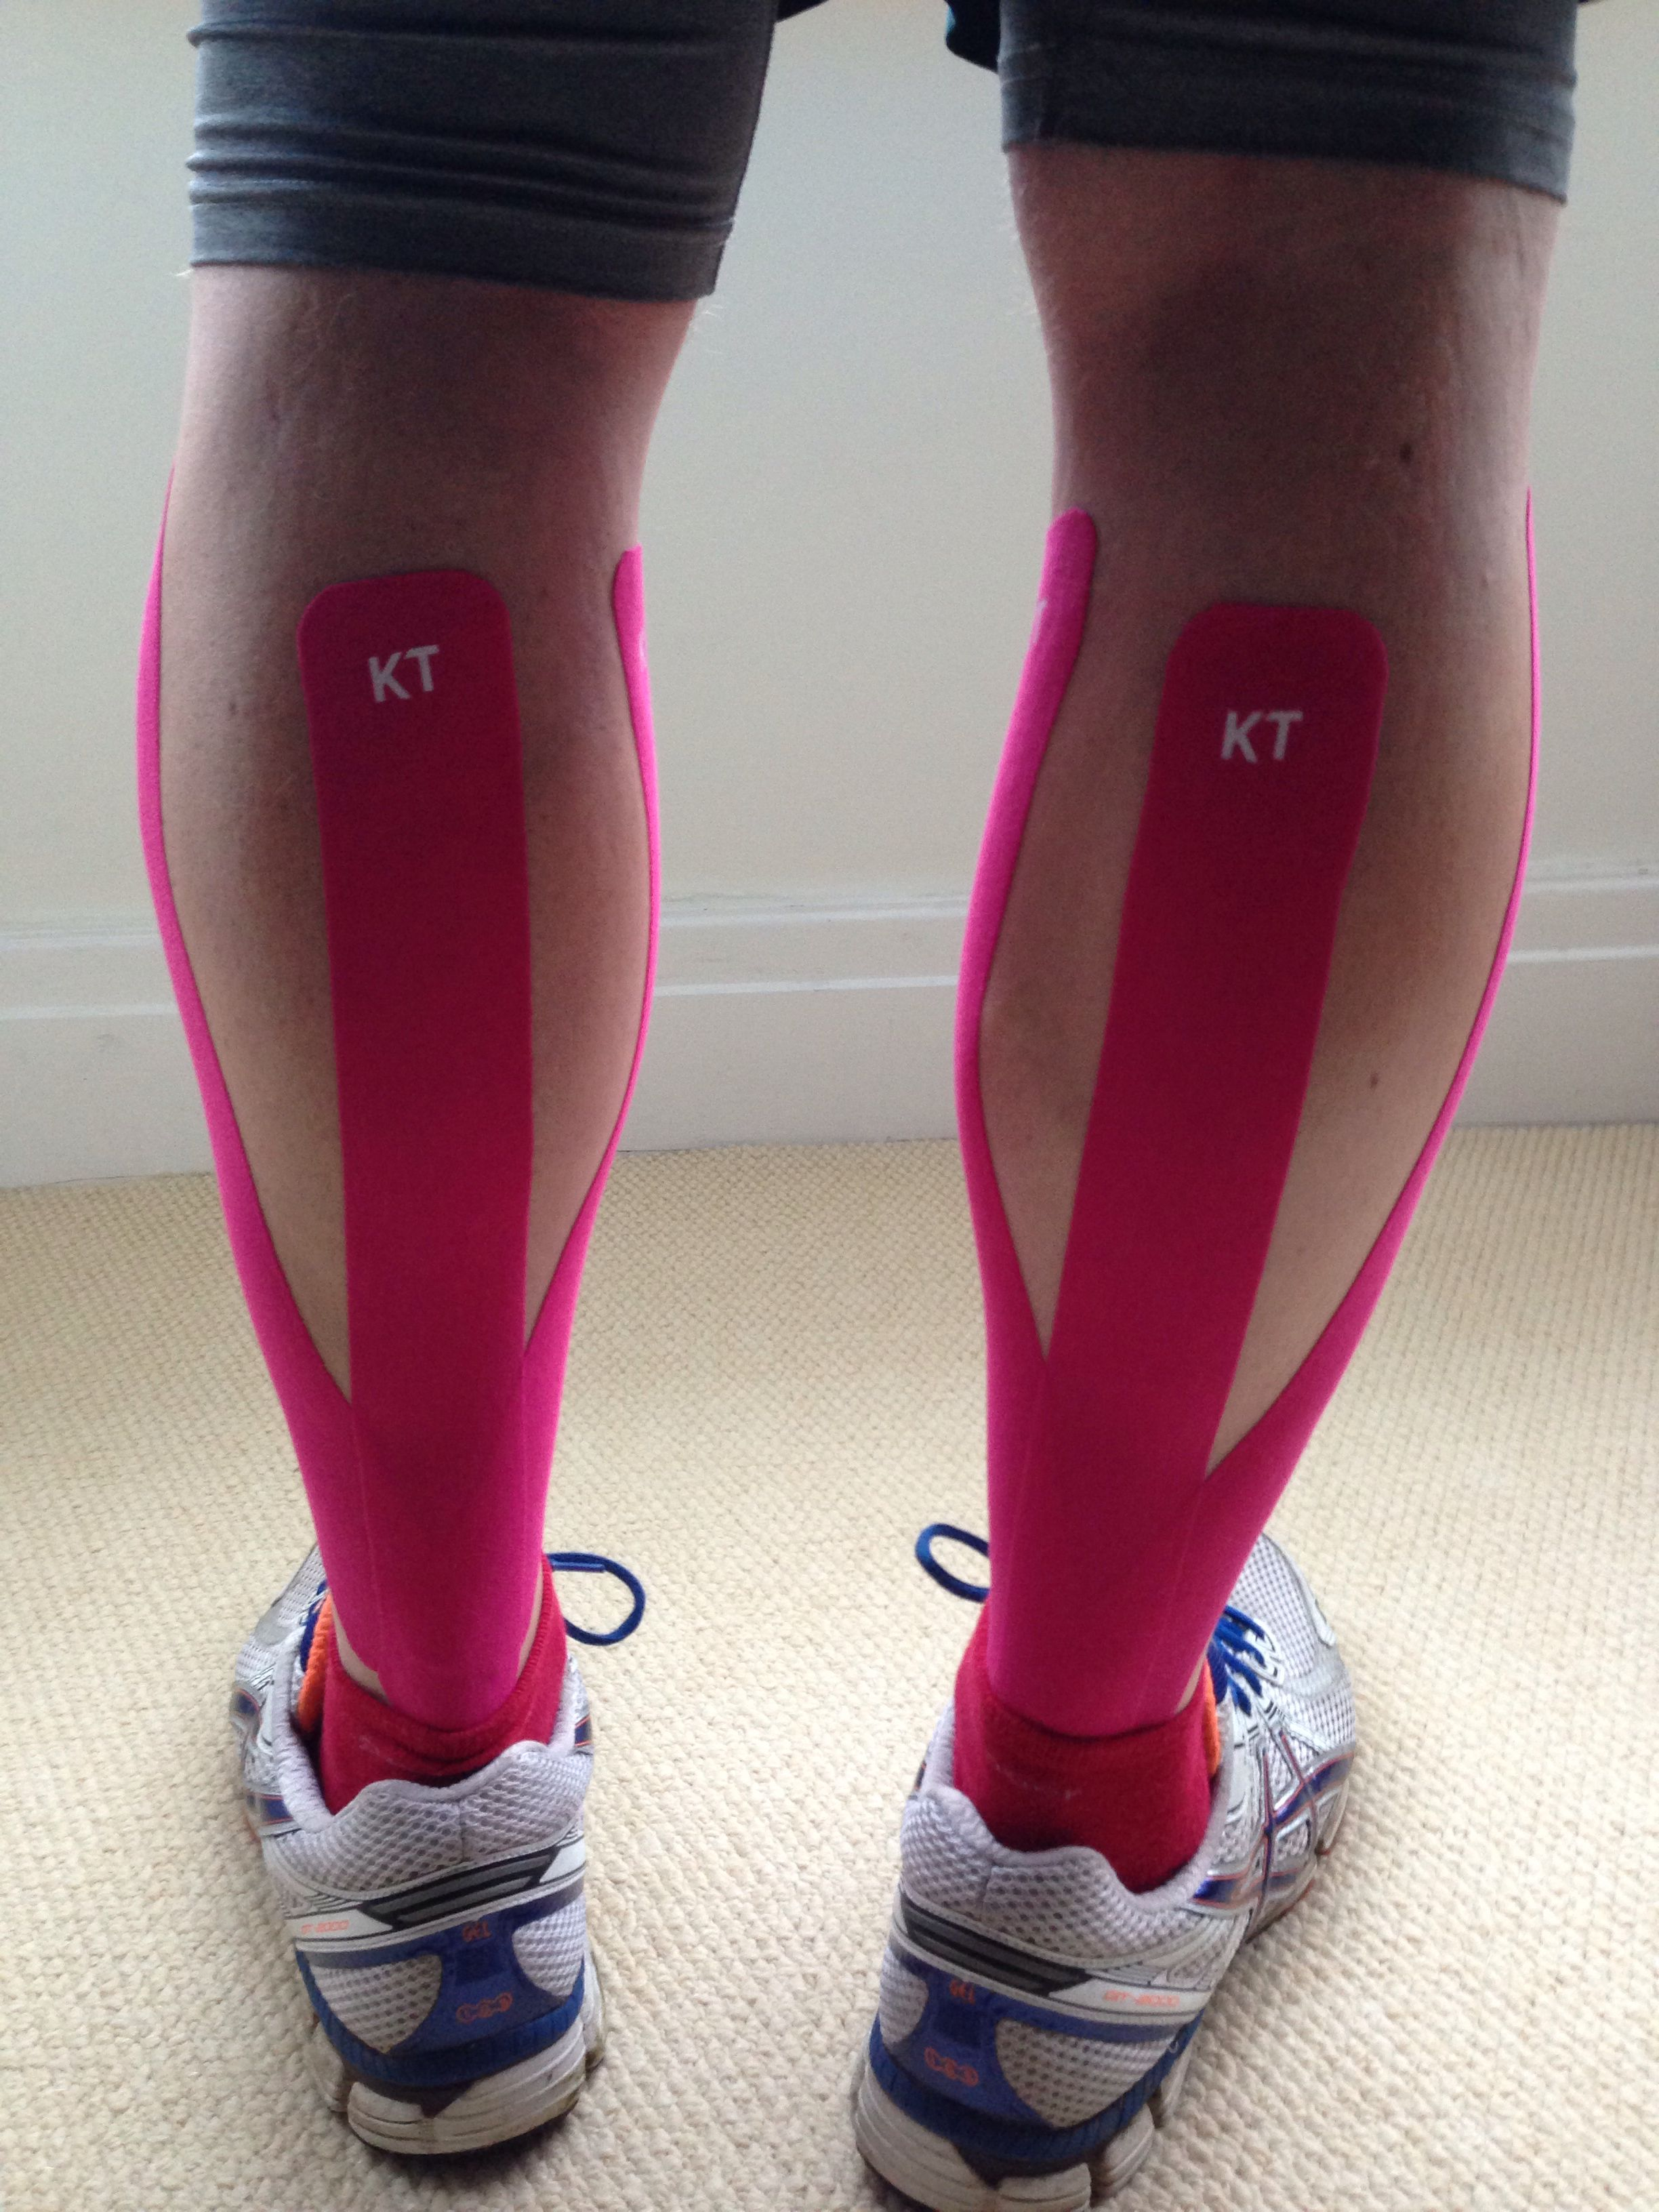 KT Tape UK Calf Taping (With images) Pulled calf muscle